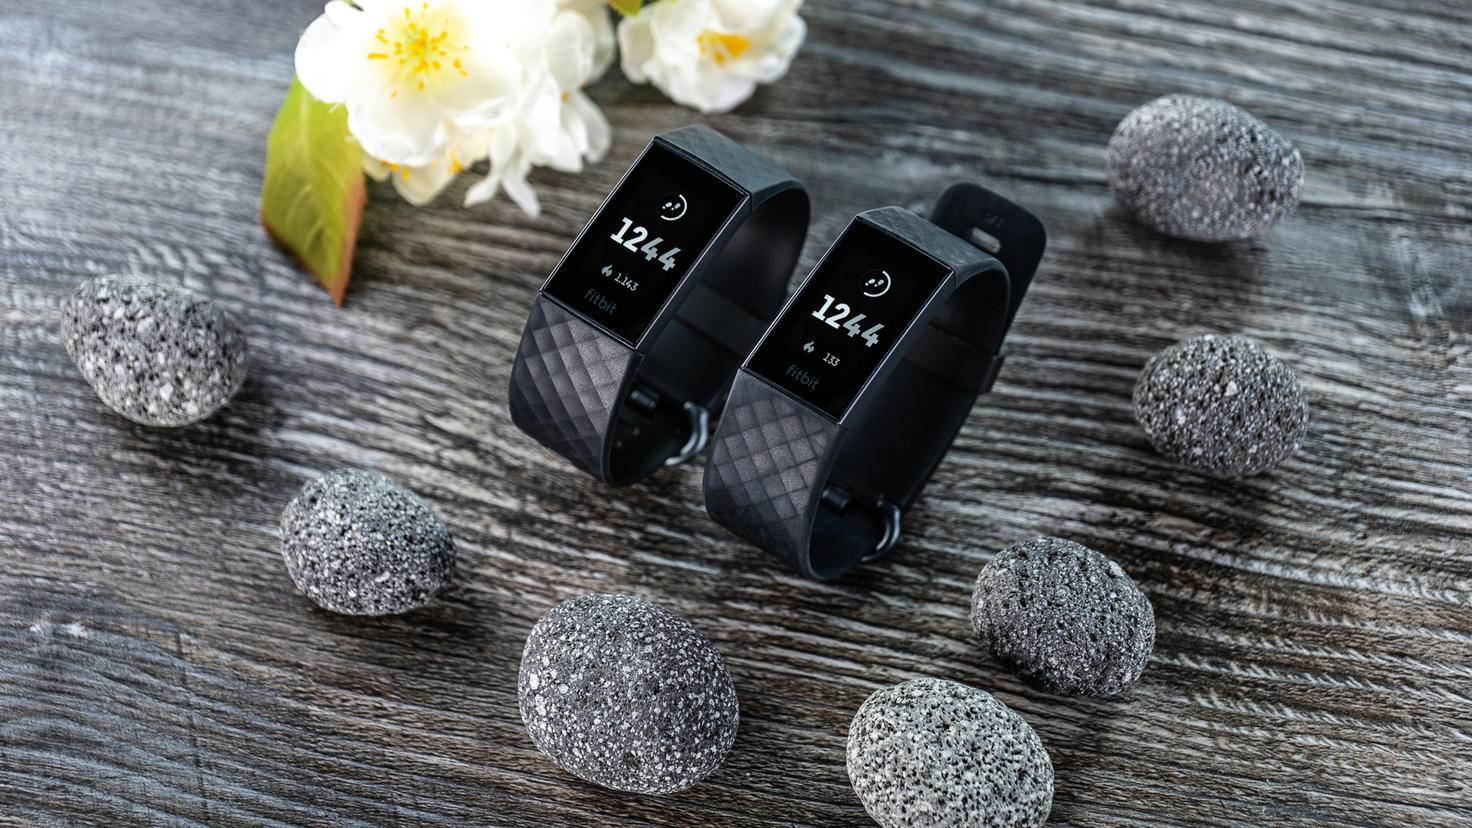 Fitbit Charge 4 and Fitbit Charge 3